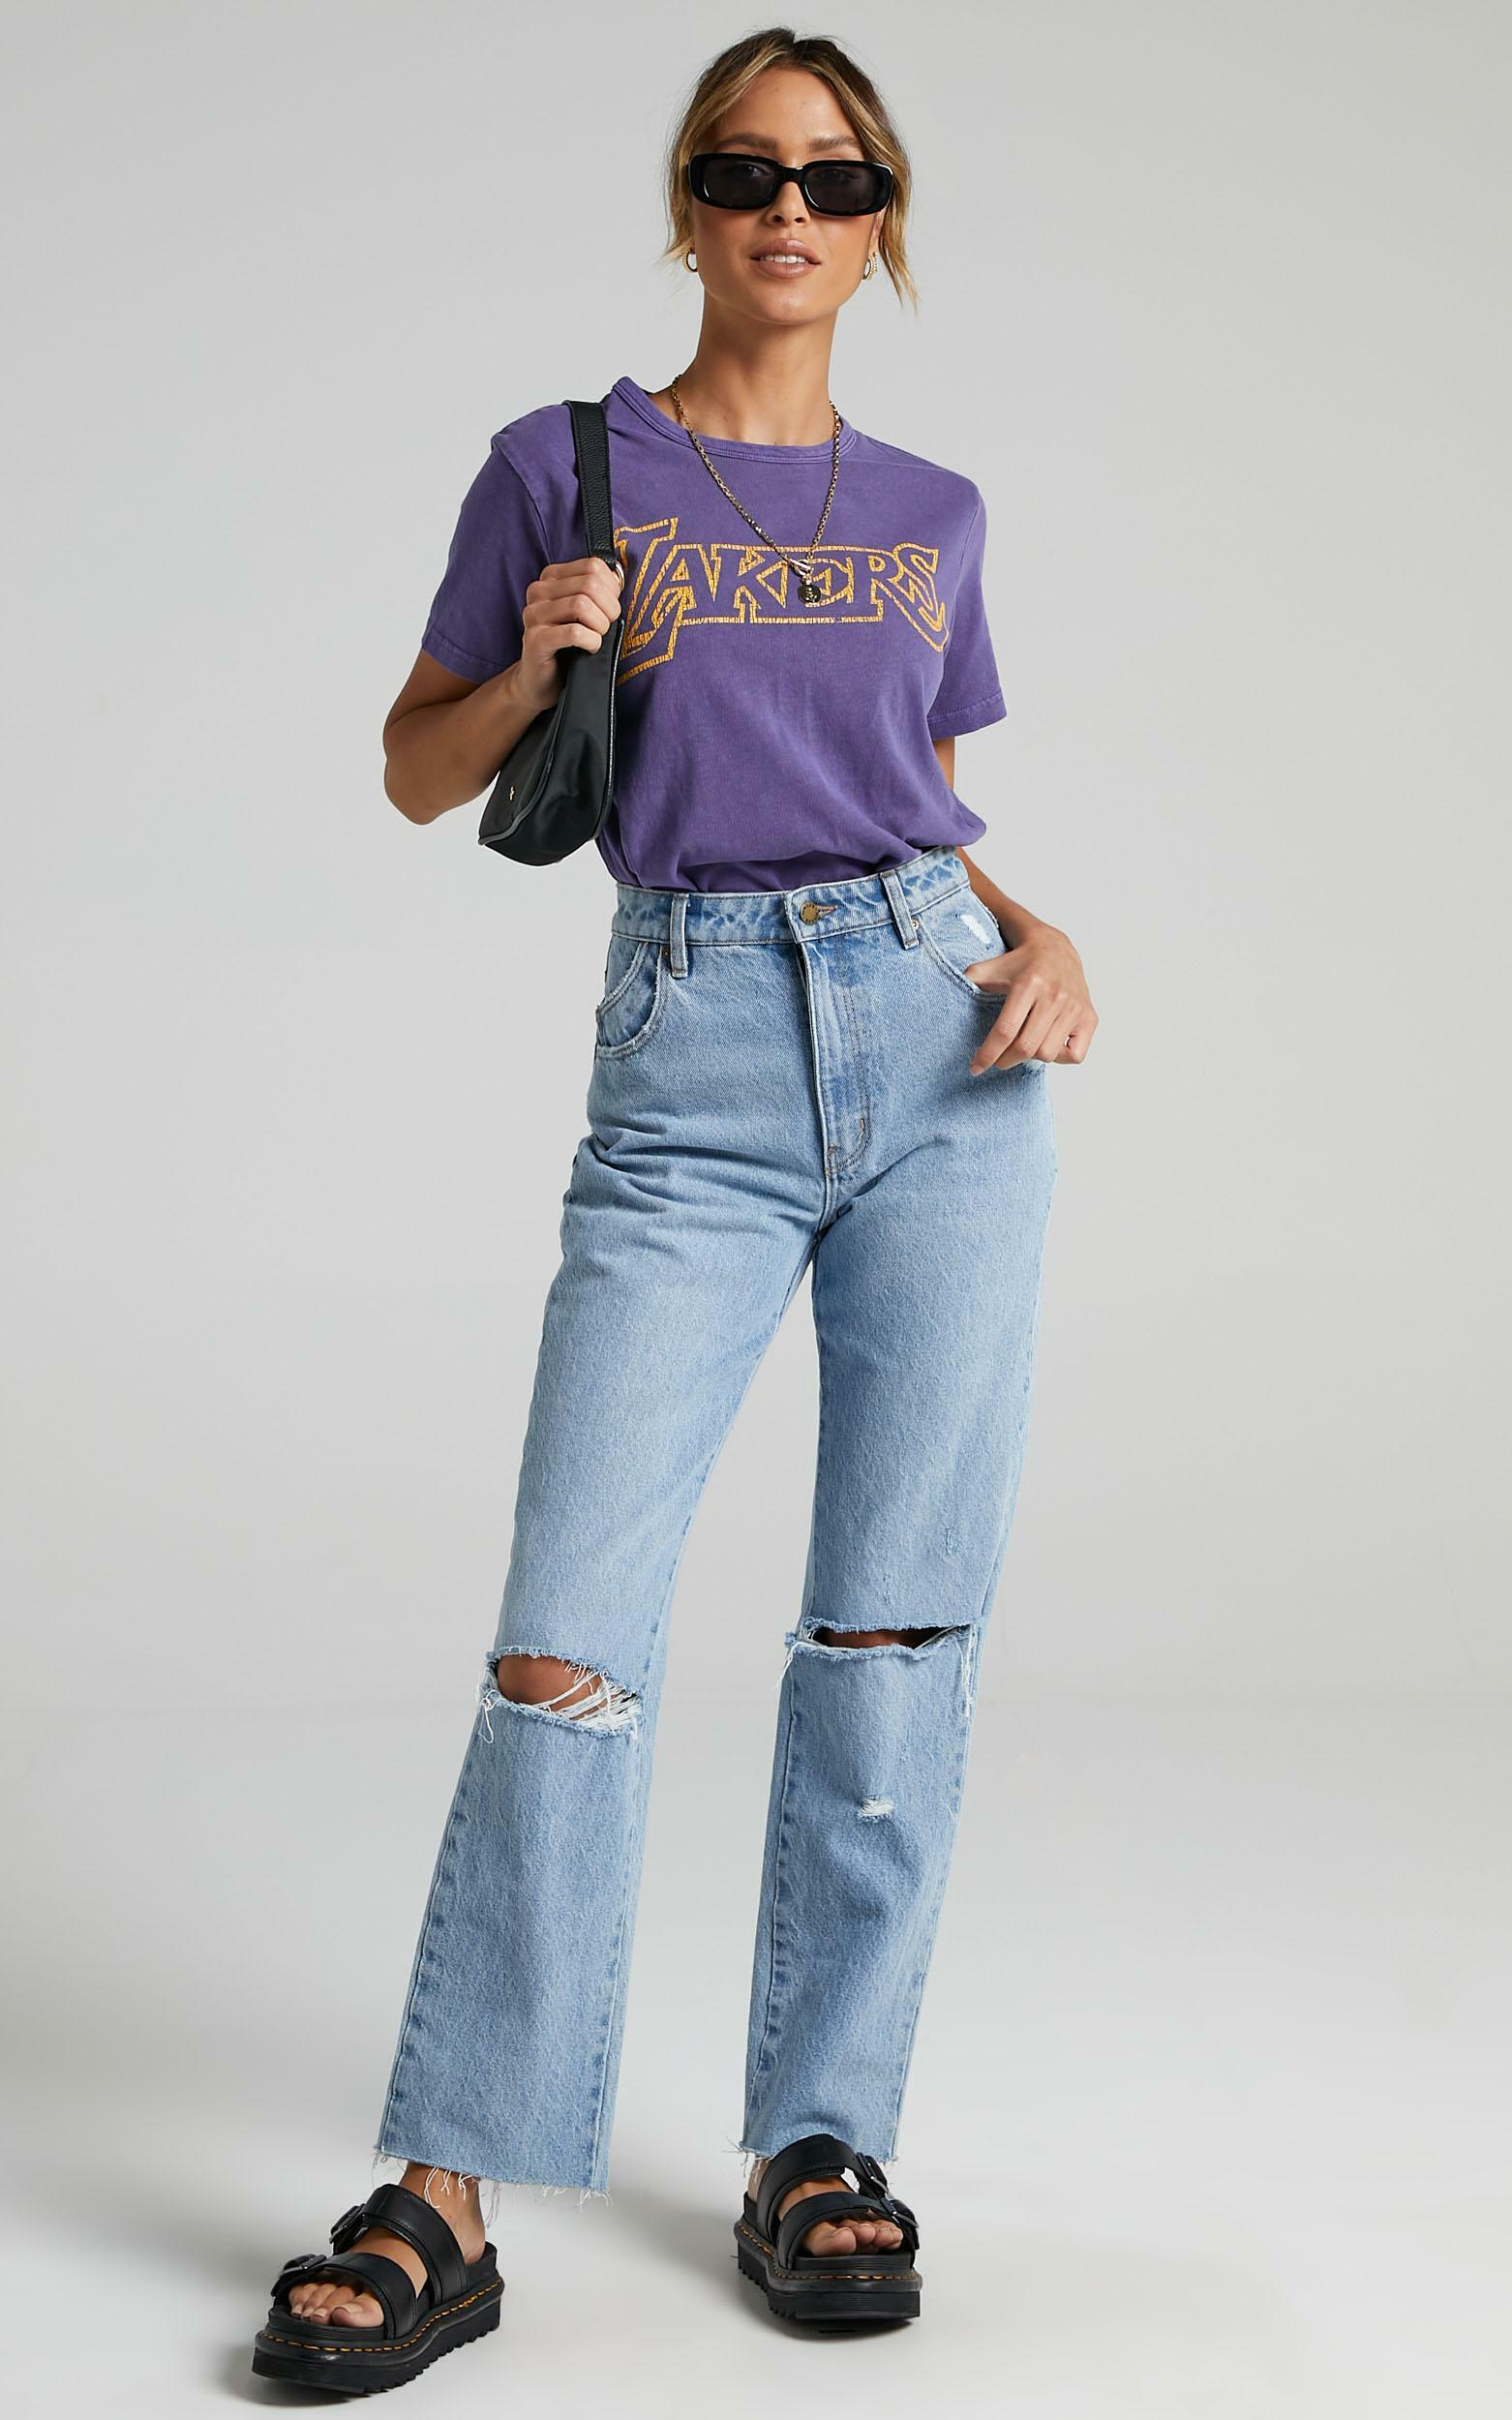 Mitchell & Ness - WMS Vintage Team Logo Tee Lakers in Faded Purple - XS, PRP1, hi-res image number null